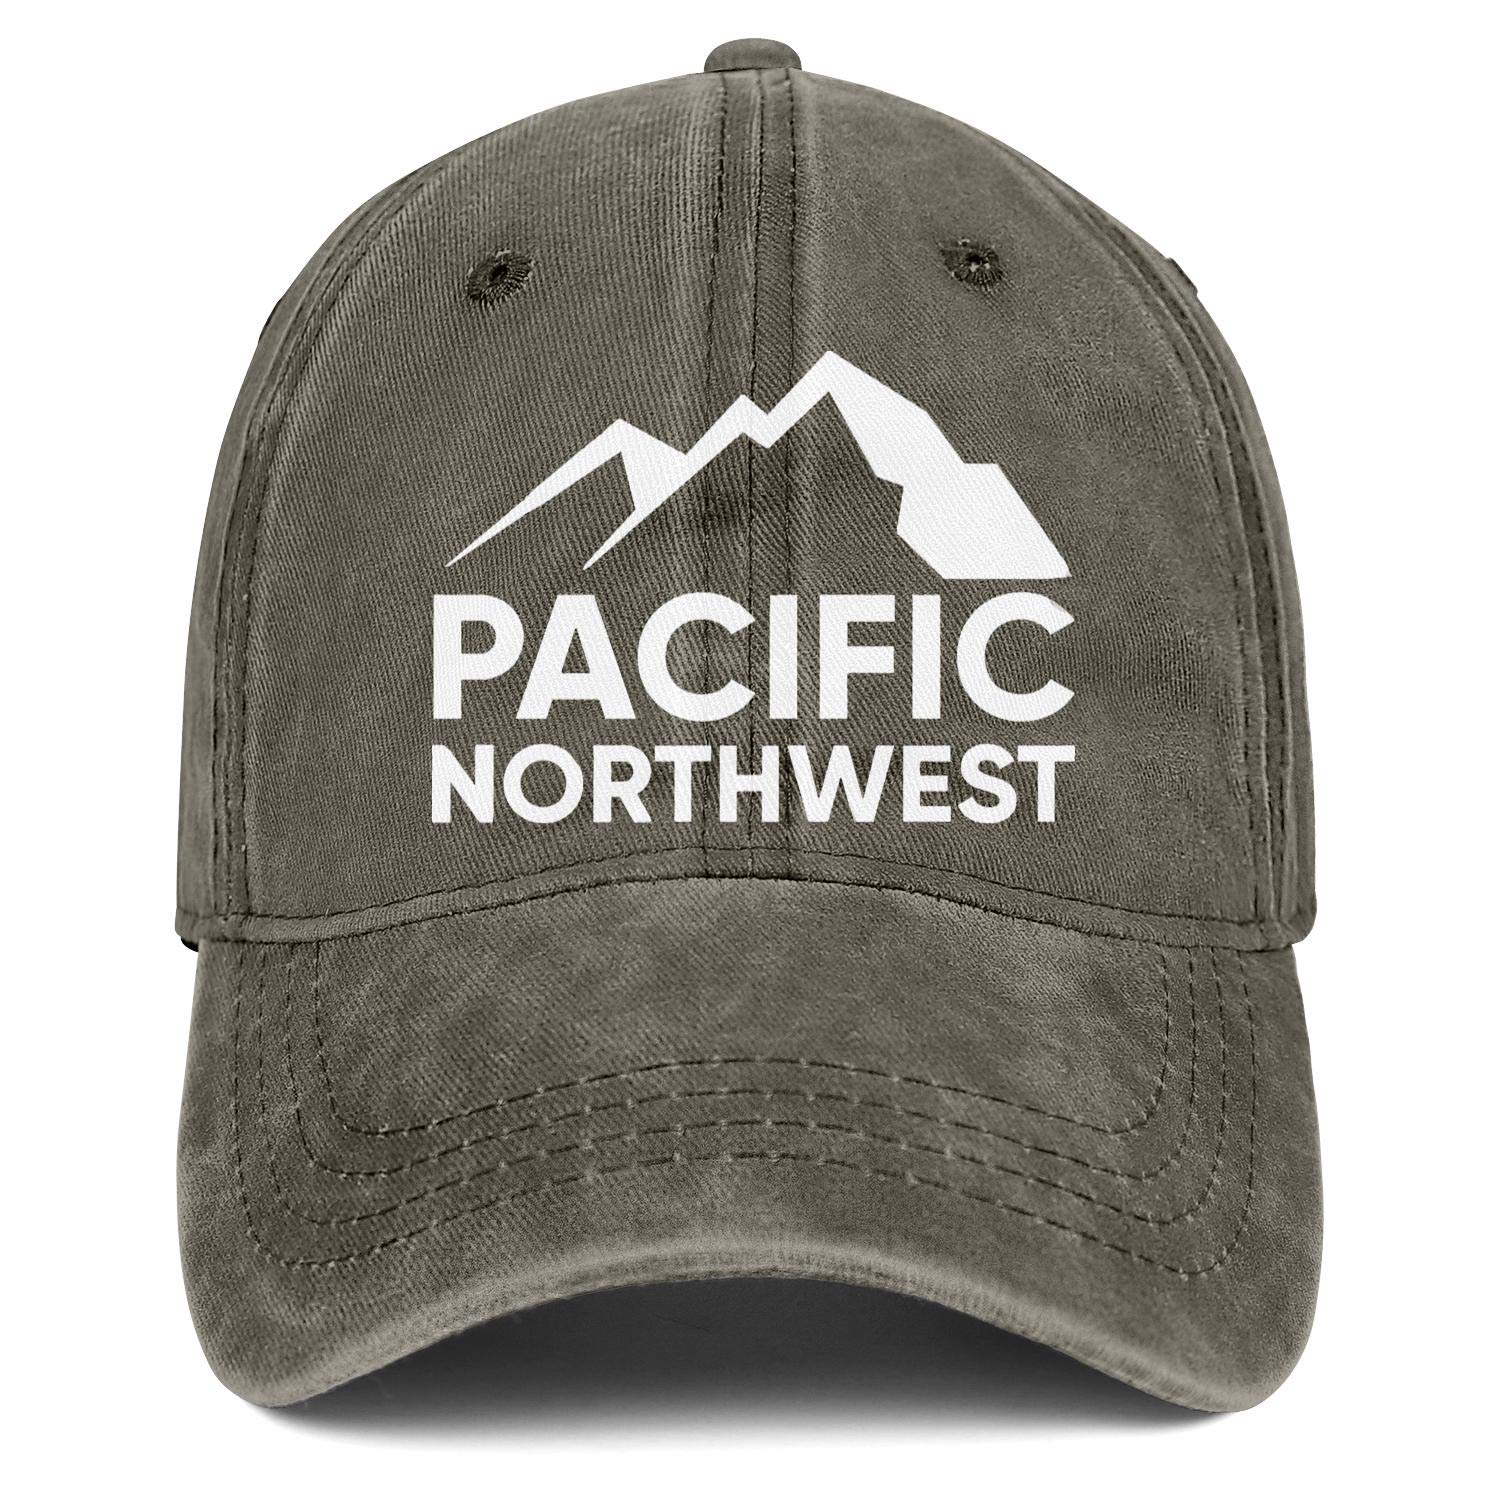 Pacific Northwest Oregon Denim Baseball Hats Unisex Men Cool Adjustable Mesh Driving Flat Caps